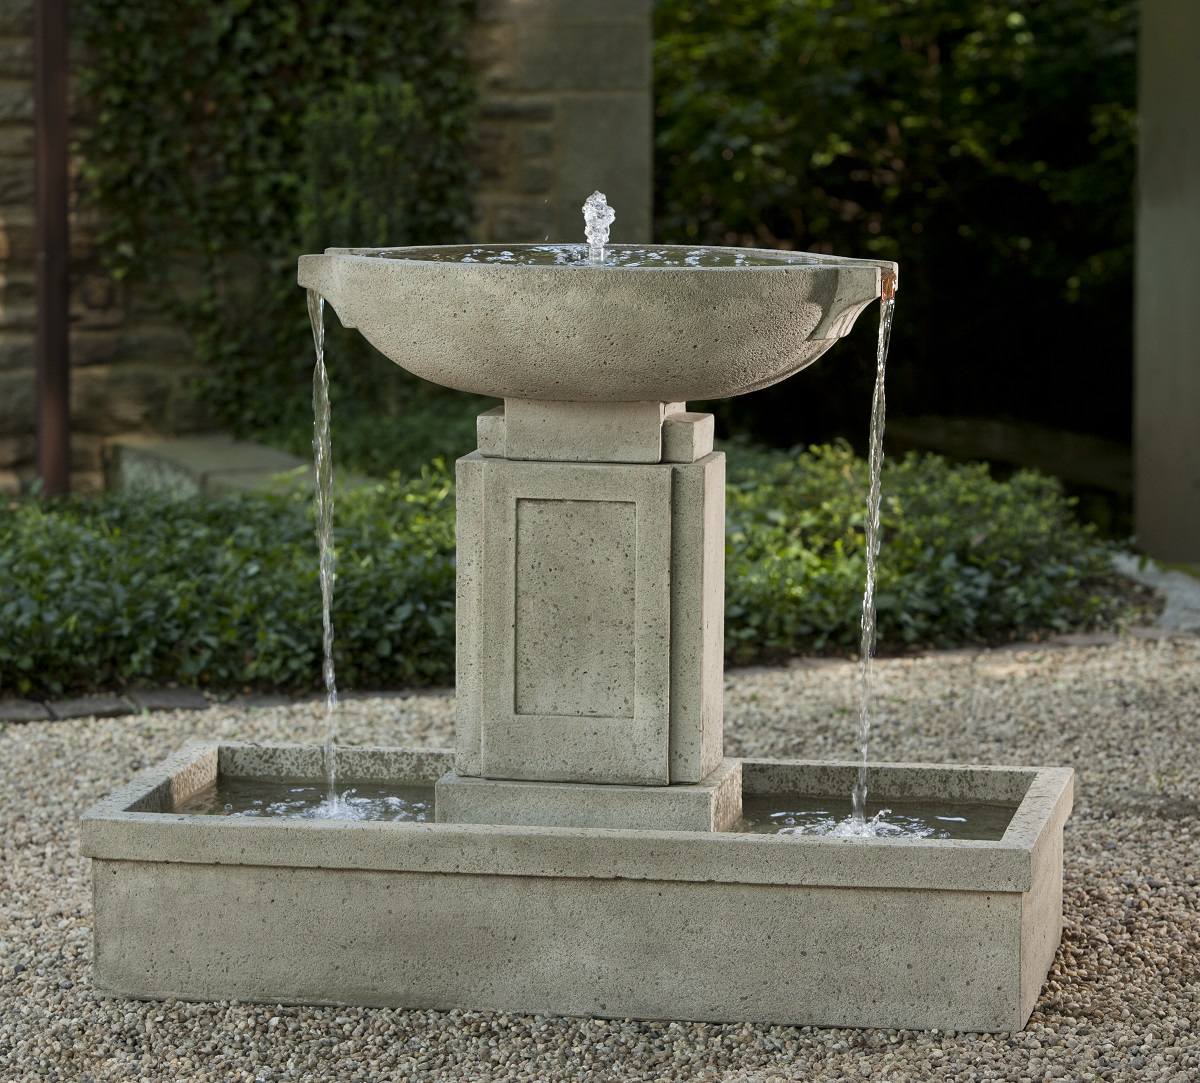 modern water fountains home photo - 3